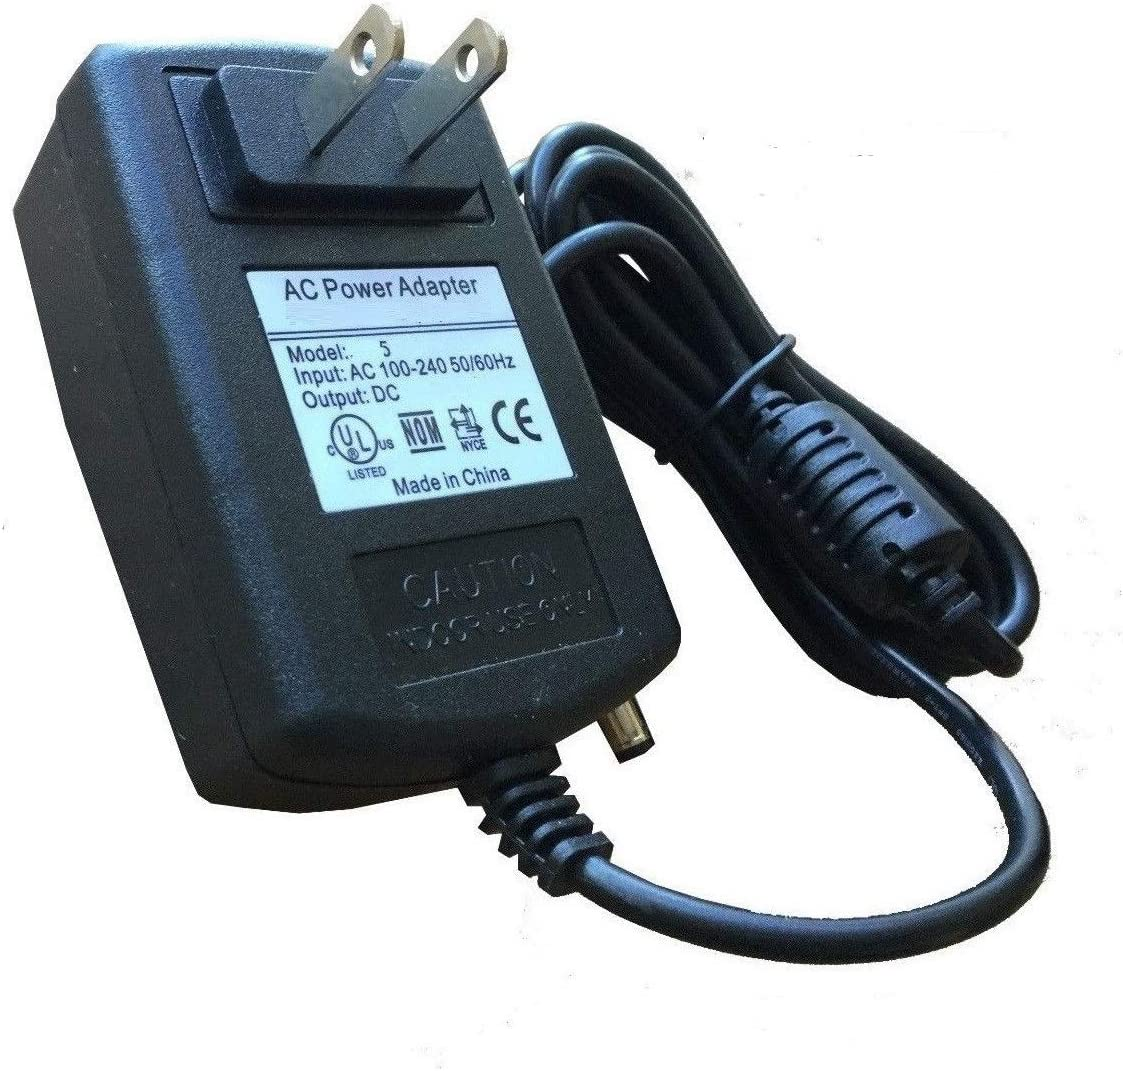 AC//DC Adapter AC100-240V-50//60Hz to DC 6.5V 2A Power Supply Adapter